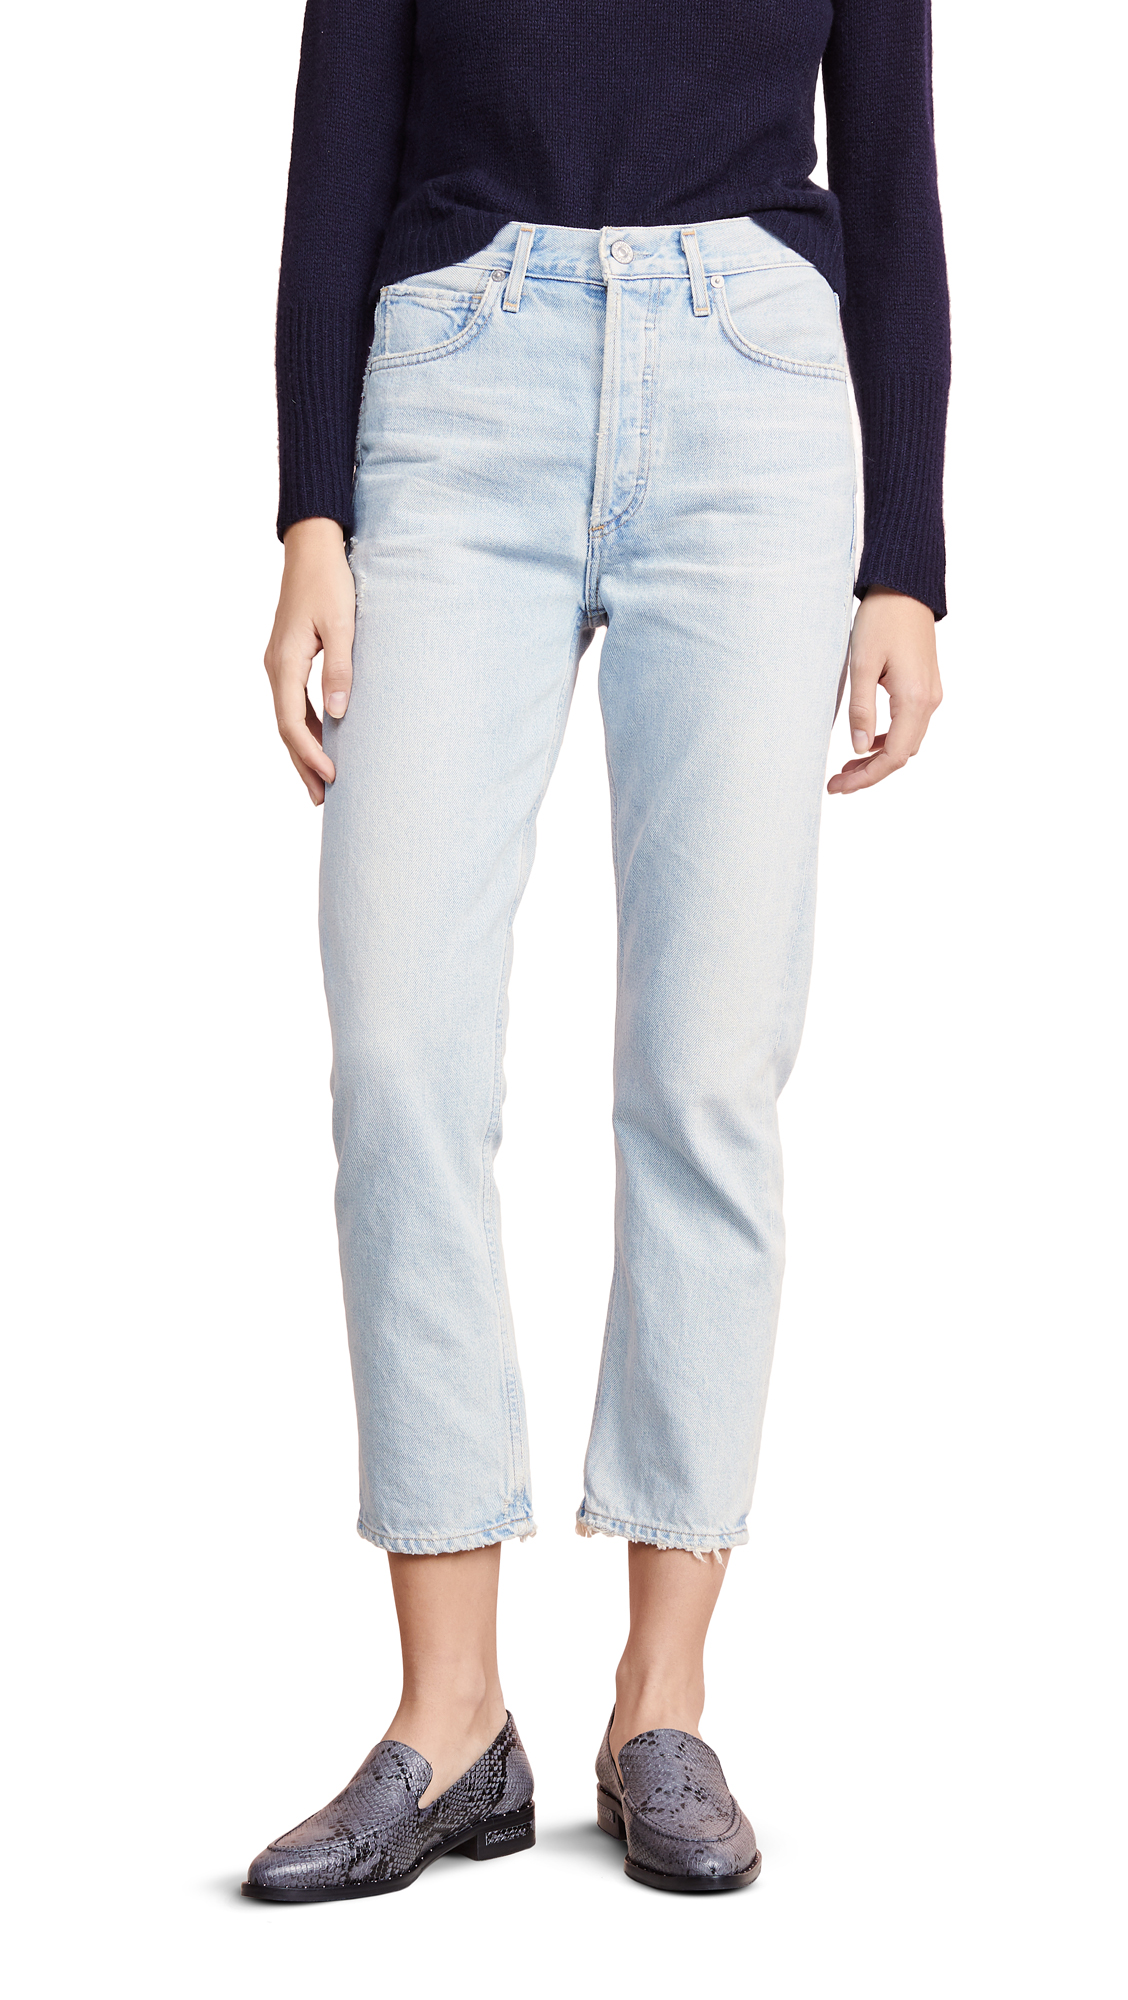 Citizens of Humanity Charlotte Crop High Rise Straight Jeans - Wild One